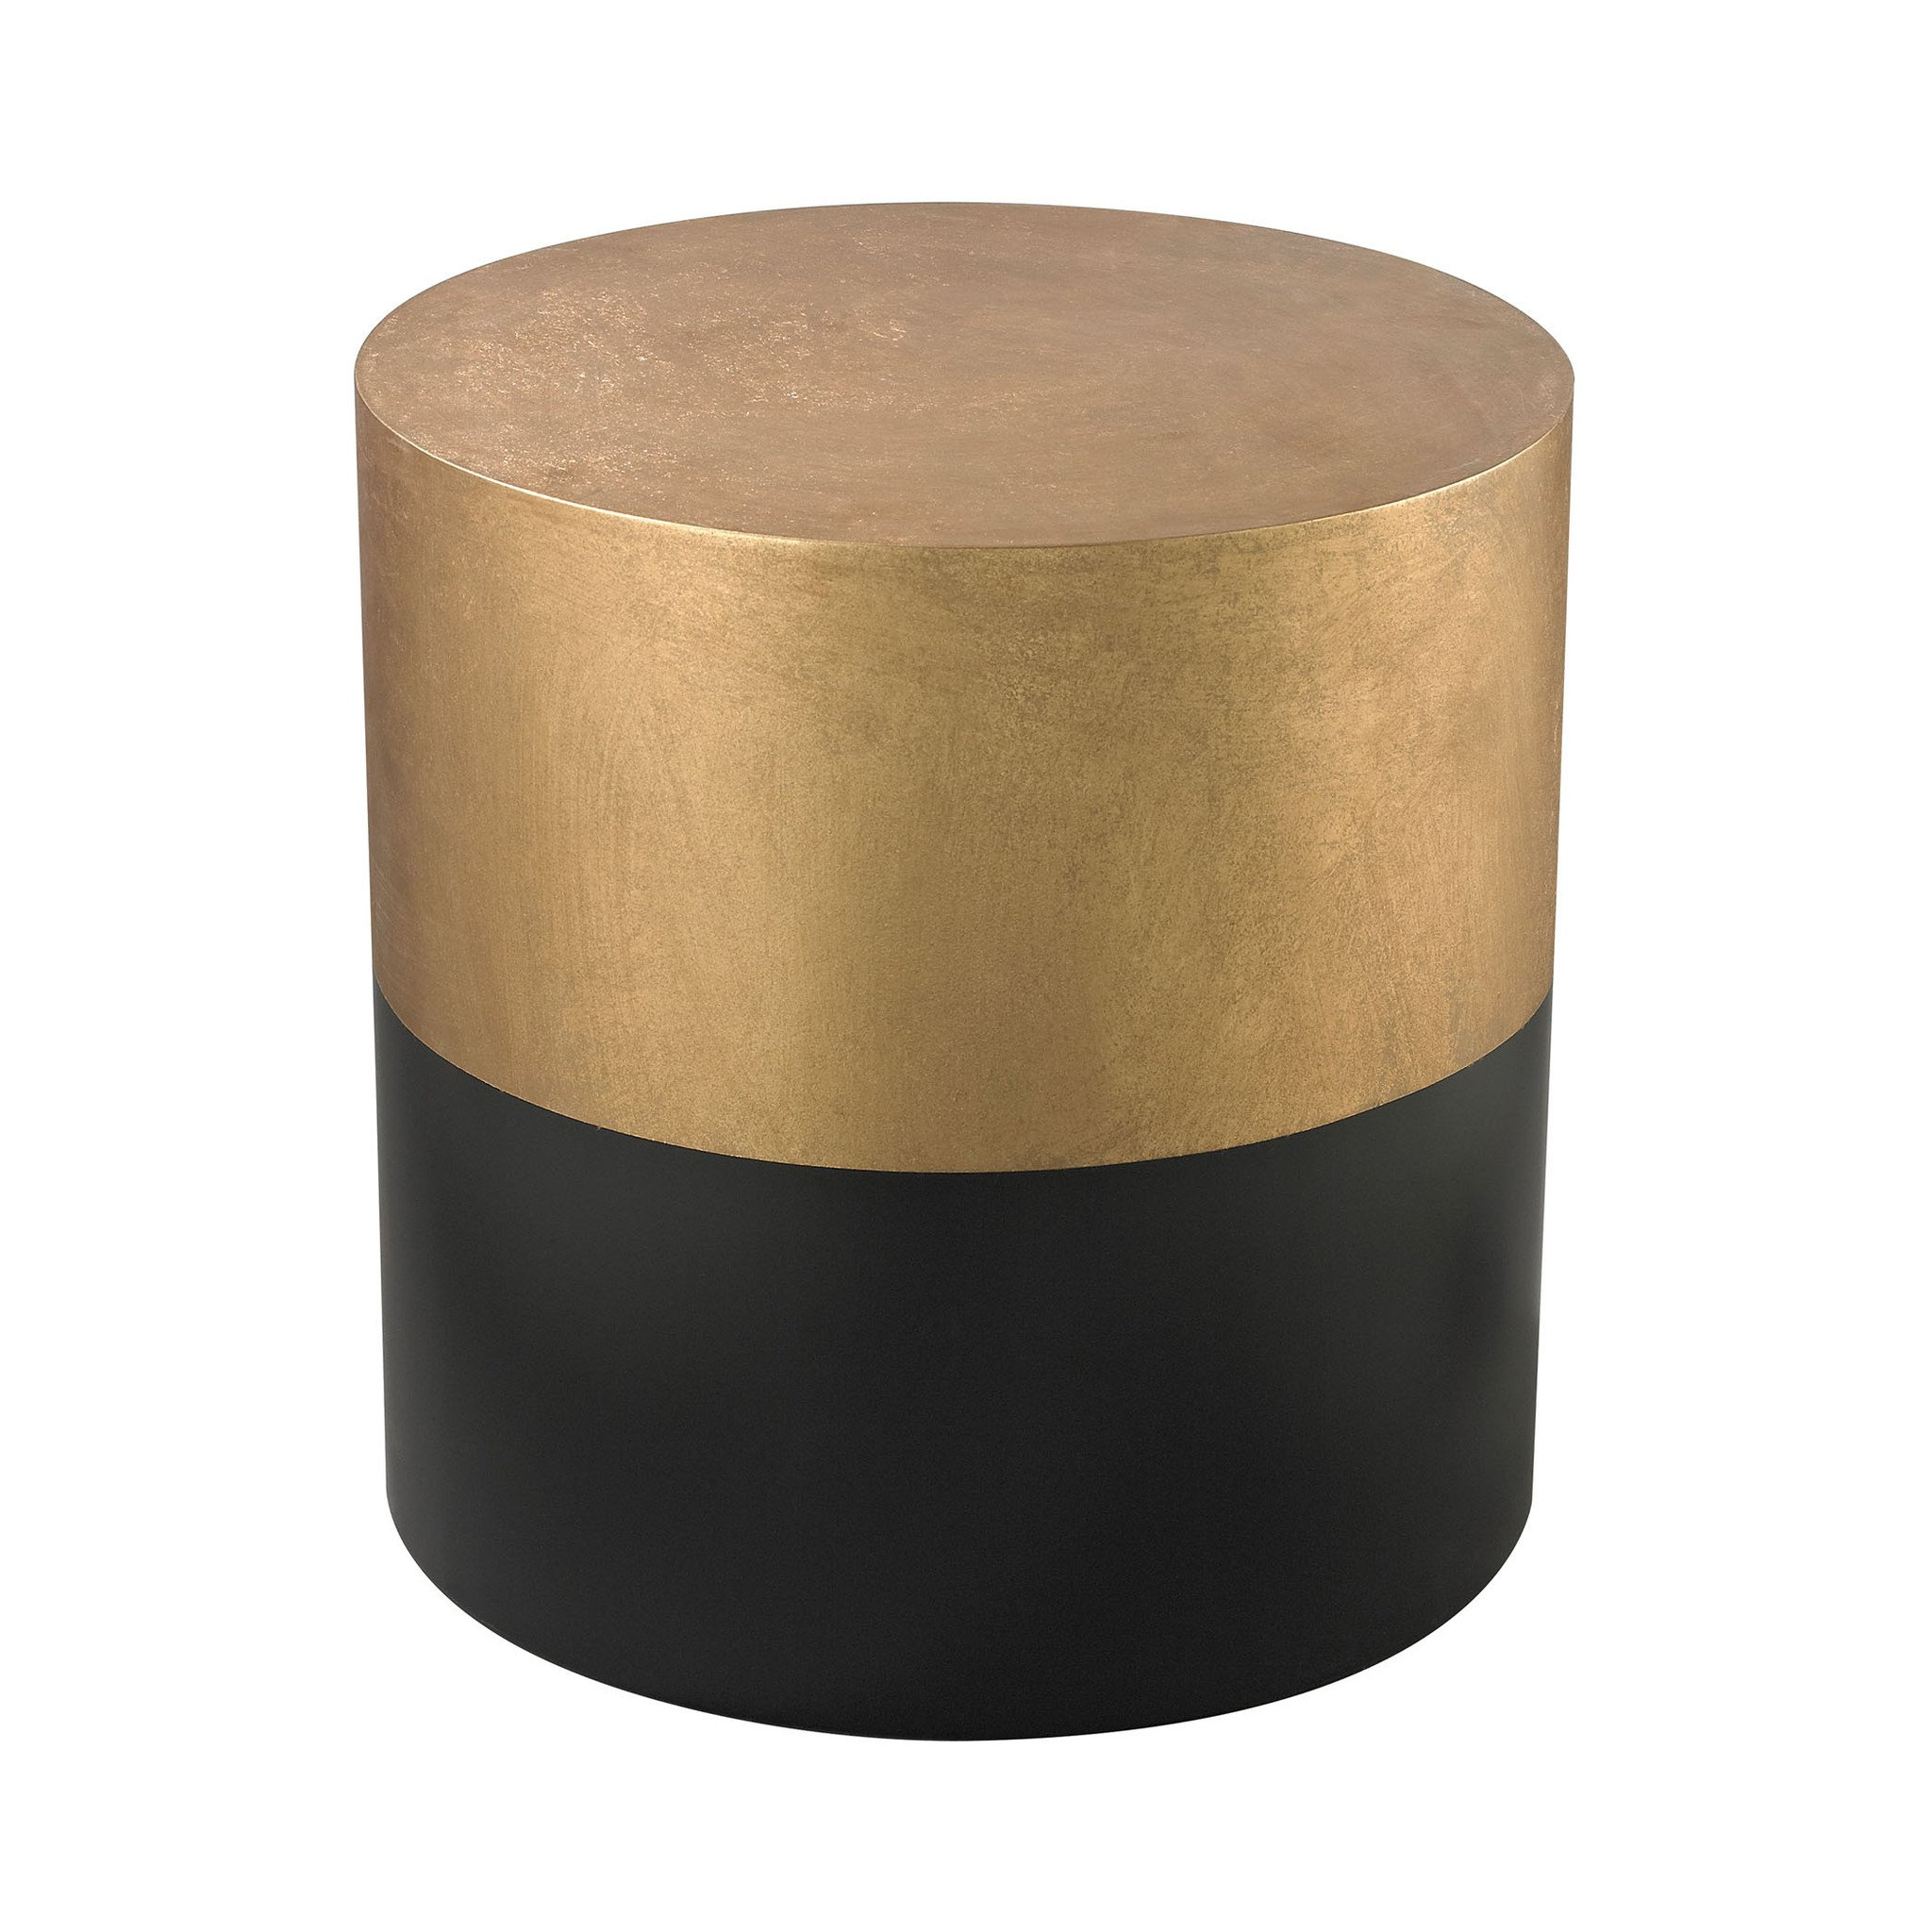 draper drum table black and gold magi home metal accent tables dimond patio umbrella unique umbrellas bedroom night lamps stump end jcpenney sectional dresser mission style coffee